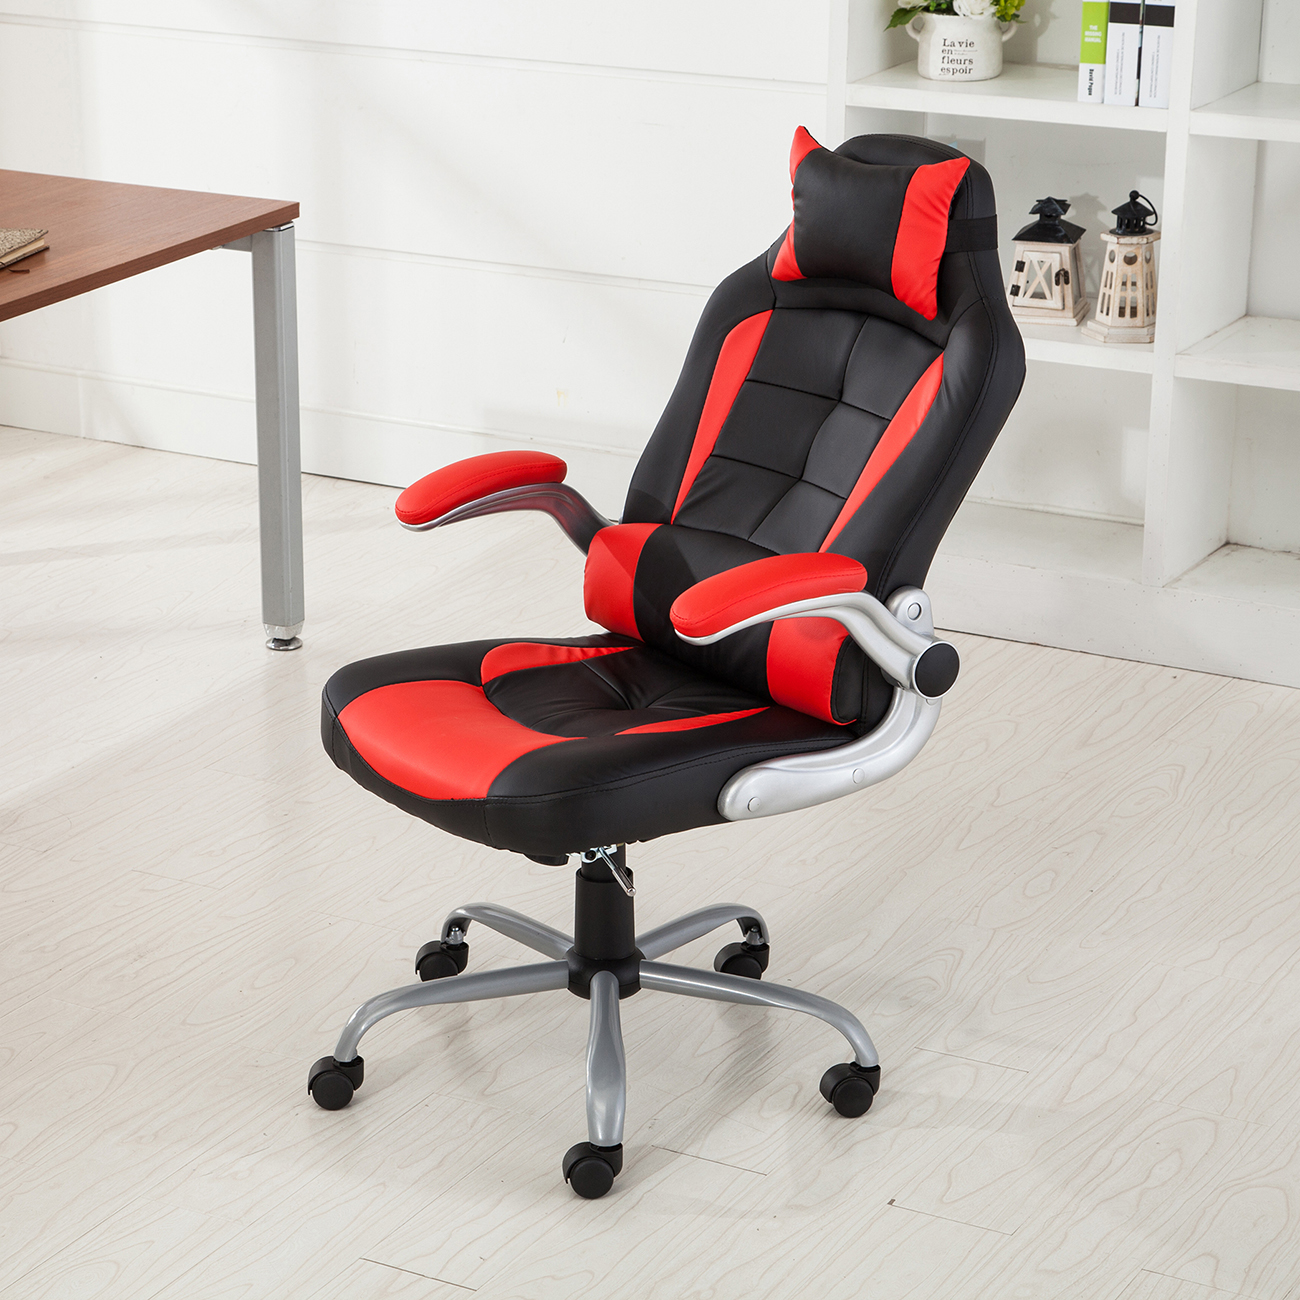 High Back Racing Style Gaming Chair Reclining Office